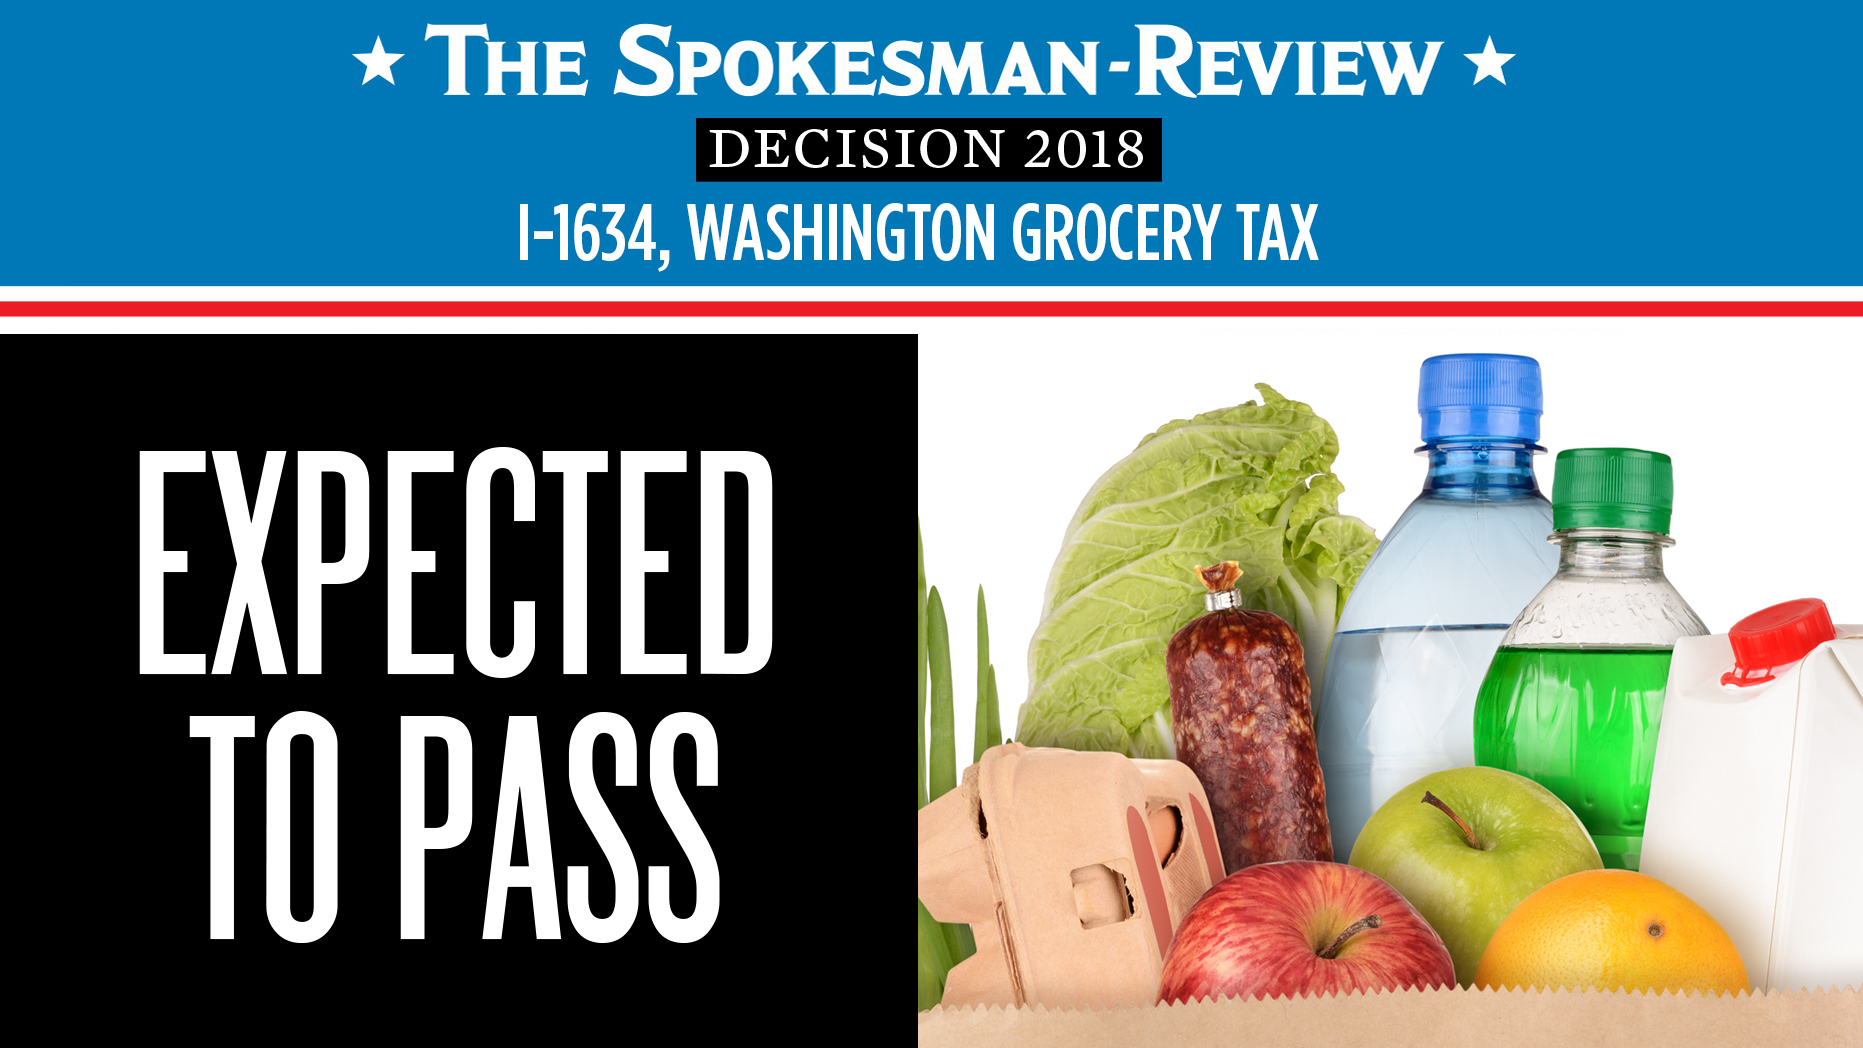 I-1634, a ban on local soda and grocery taxes, approved